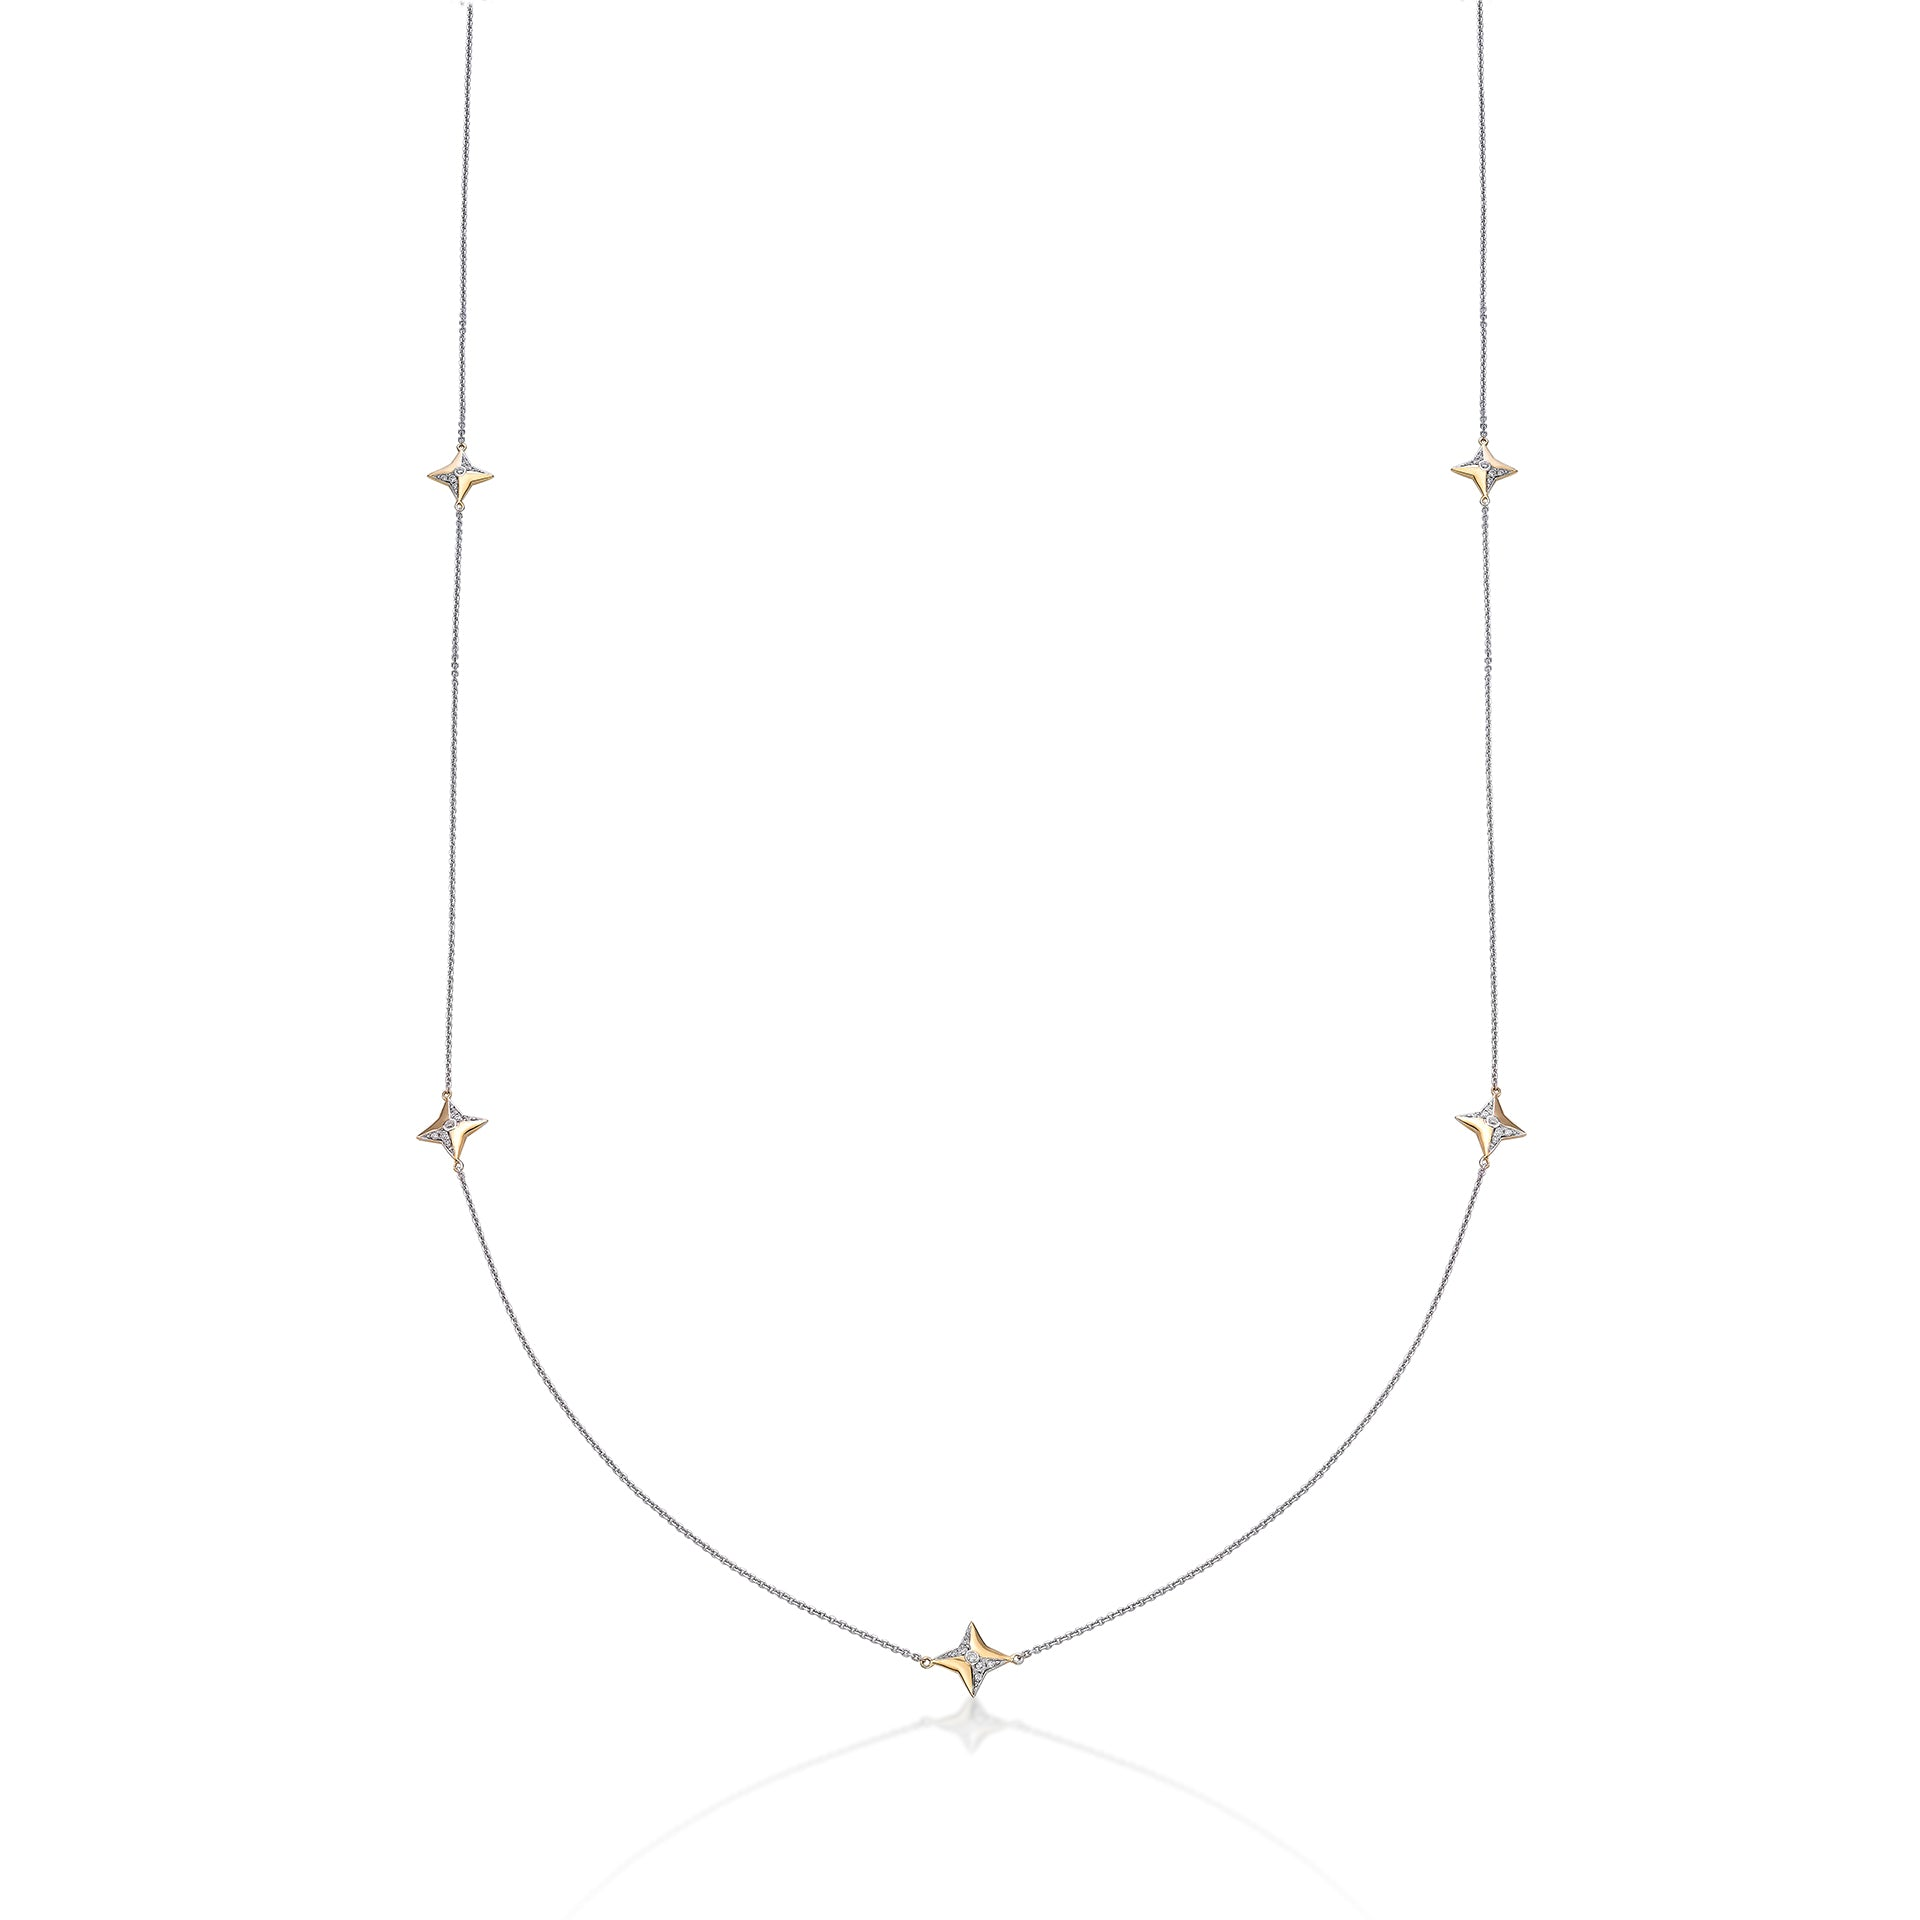 "Geometric Two Tones Gold 32"" Long Station Chain - KARP Jewellery"